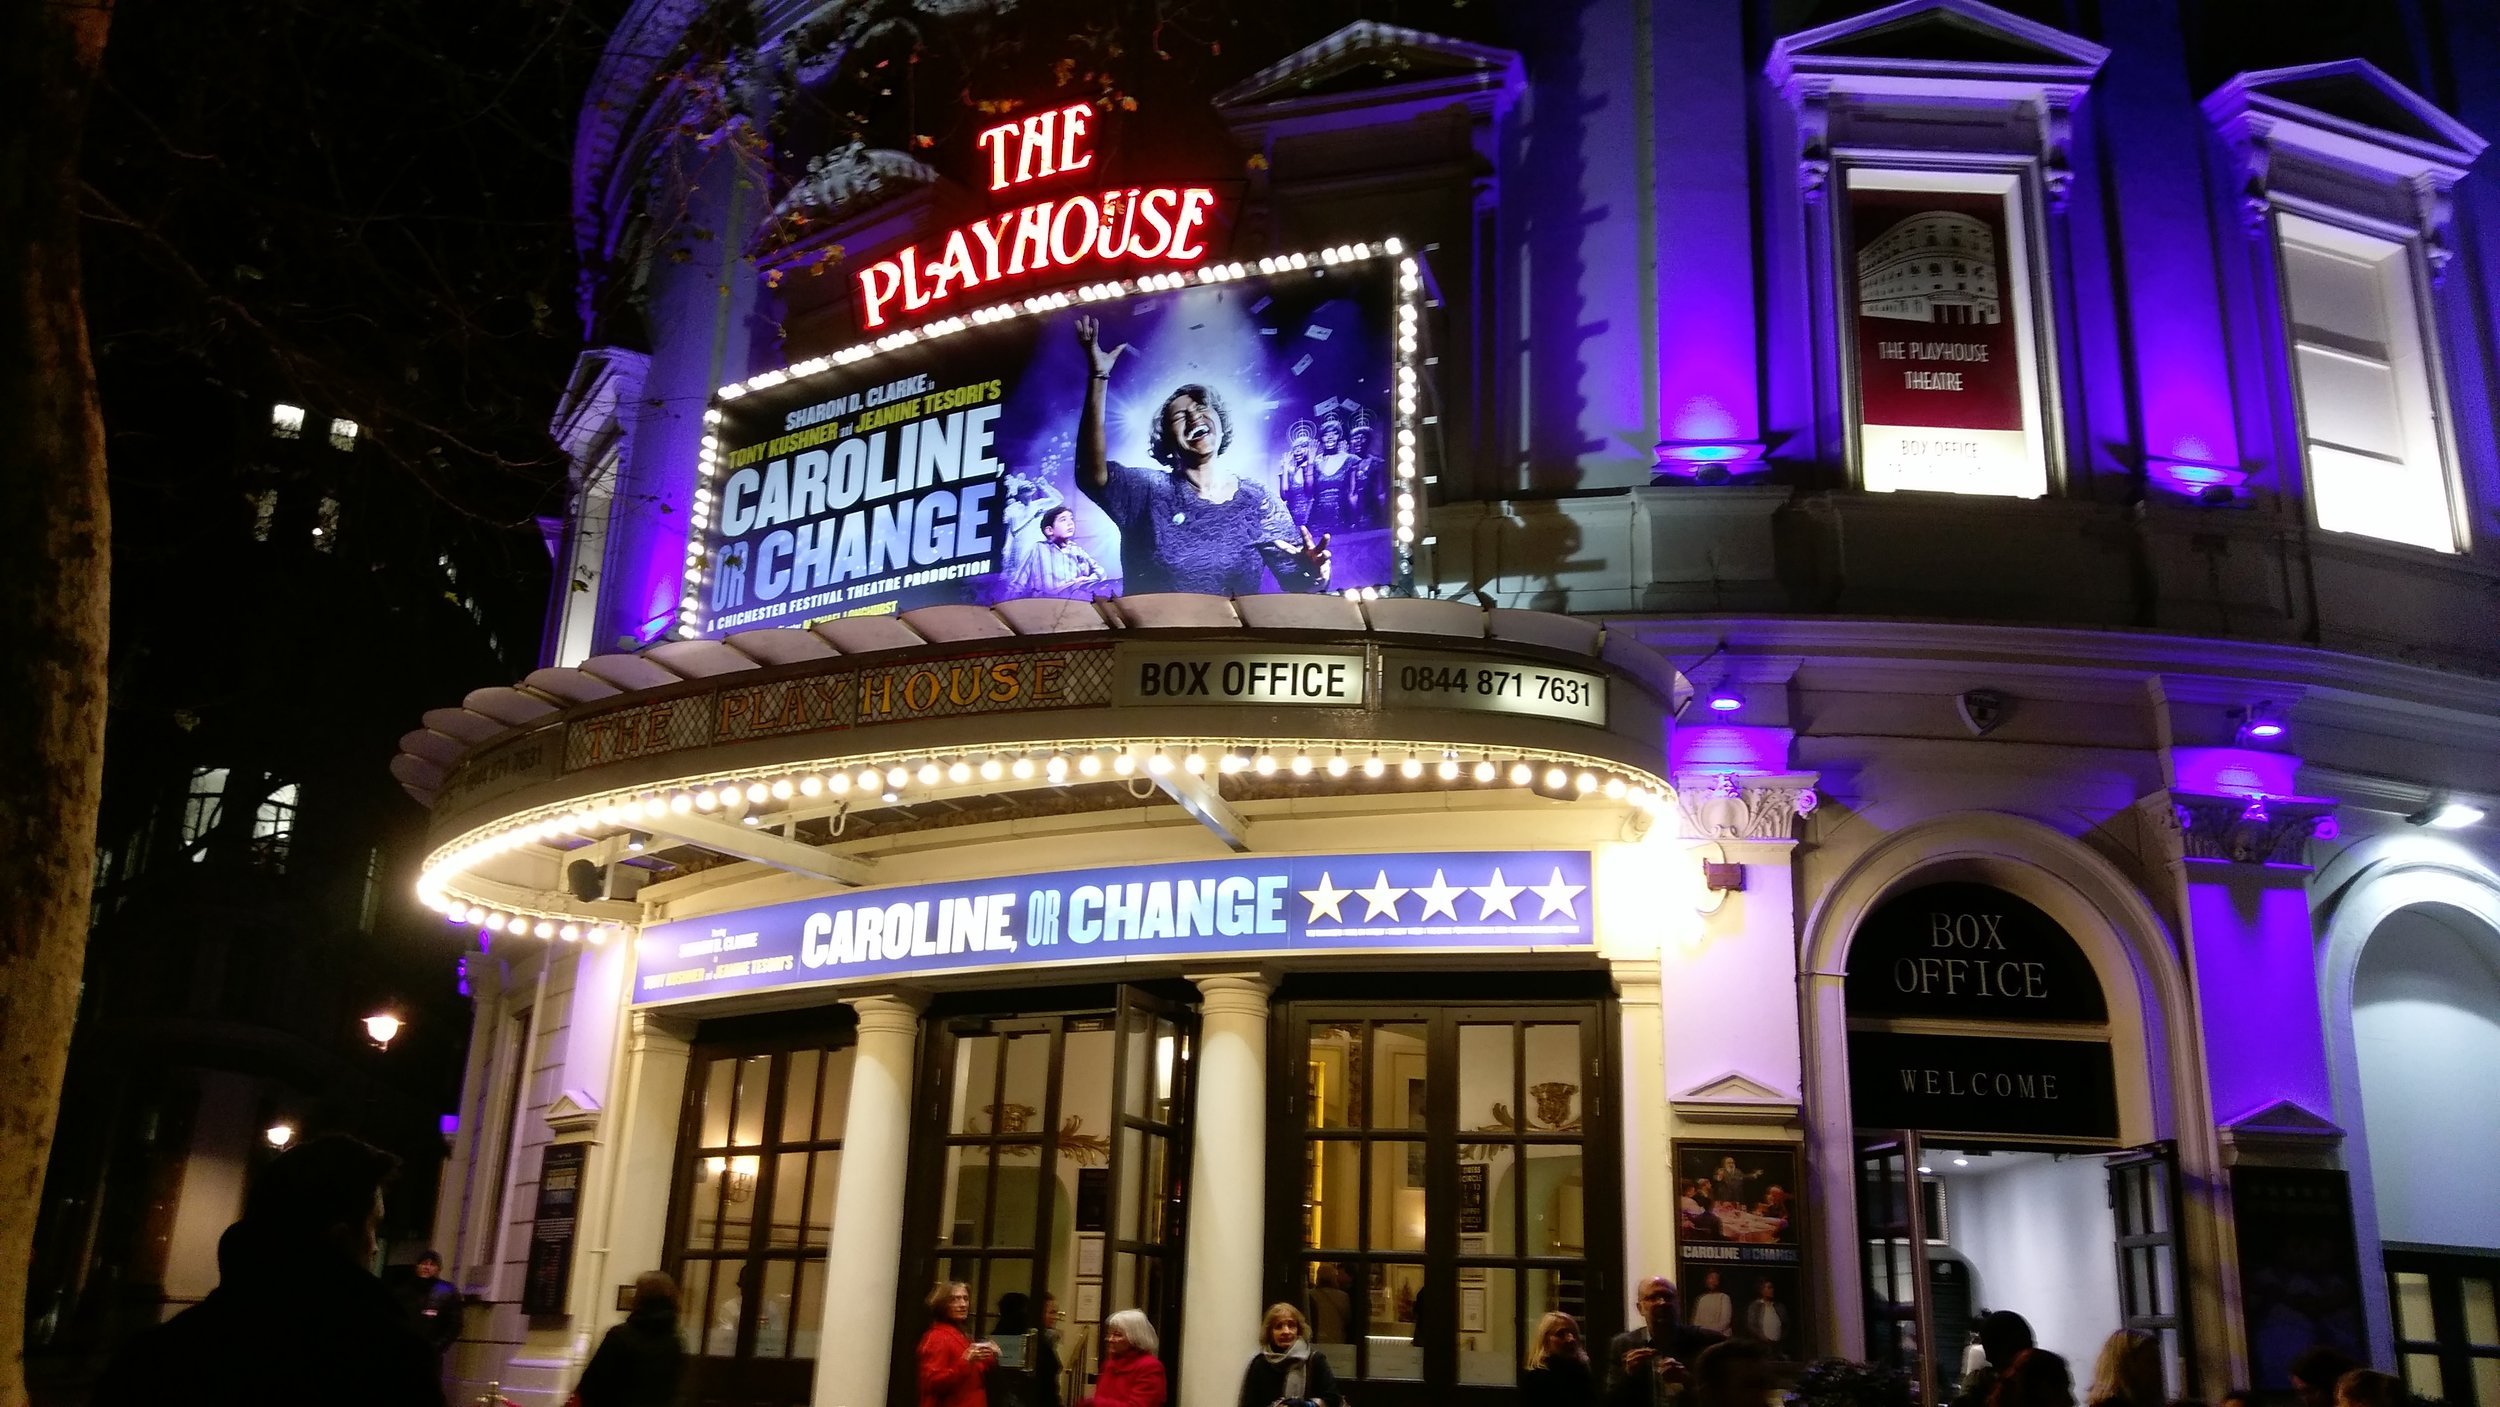 Playhouse Theatre - visited 09/01/2019